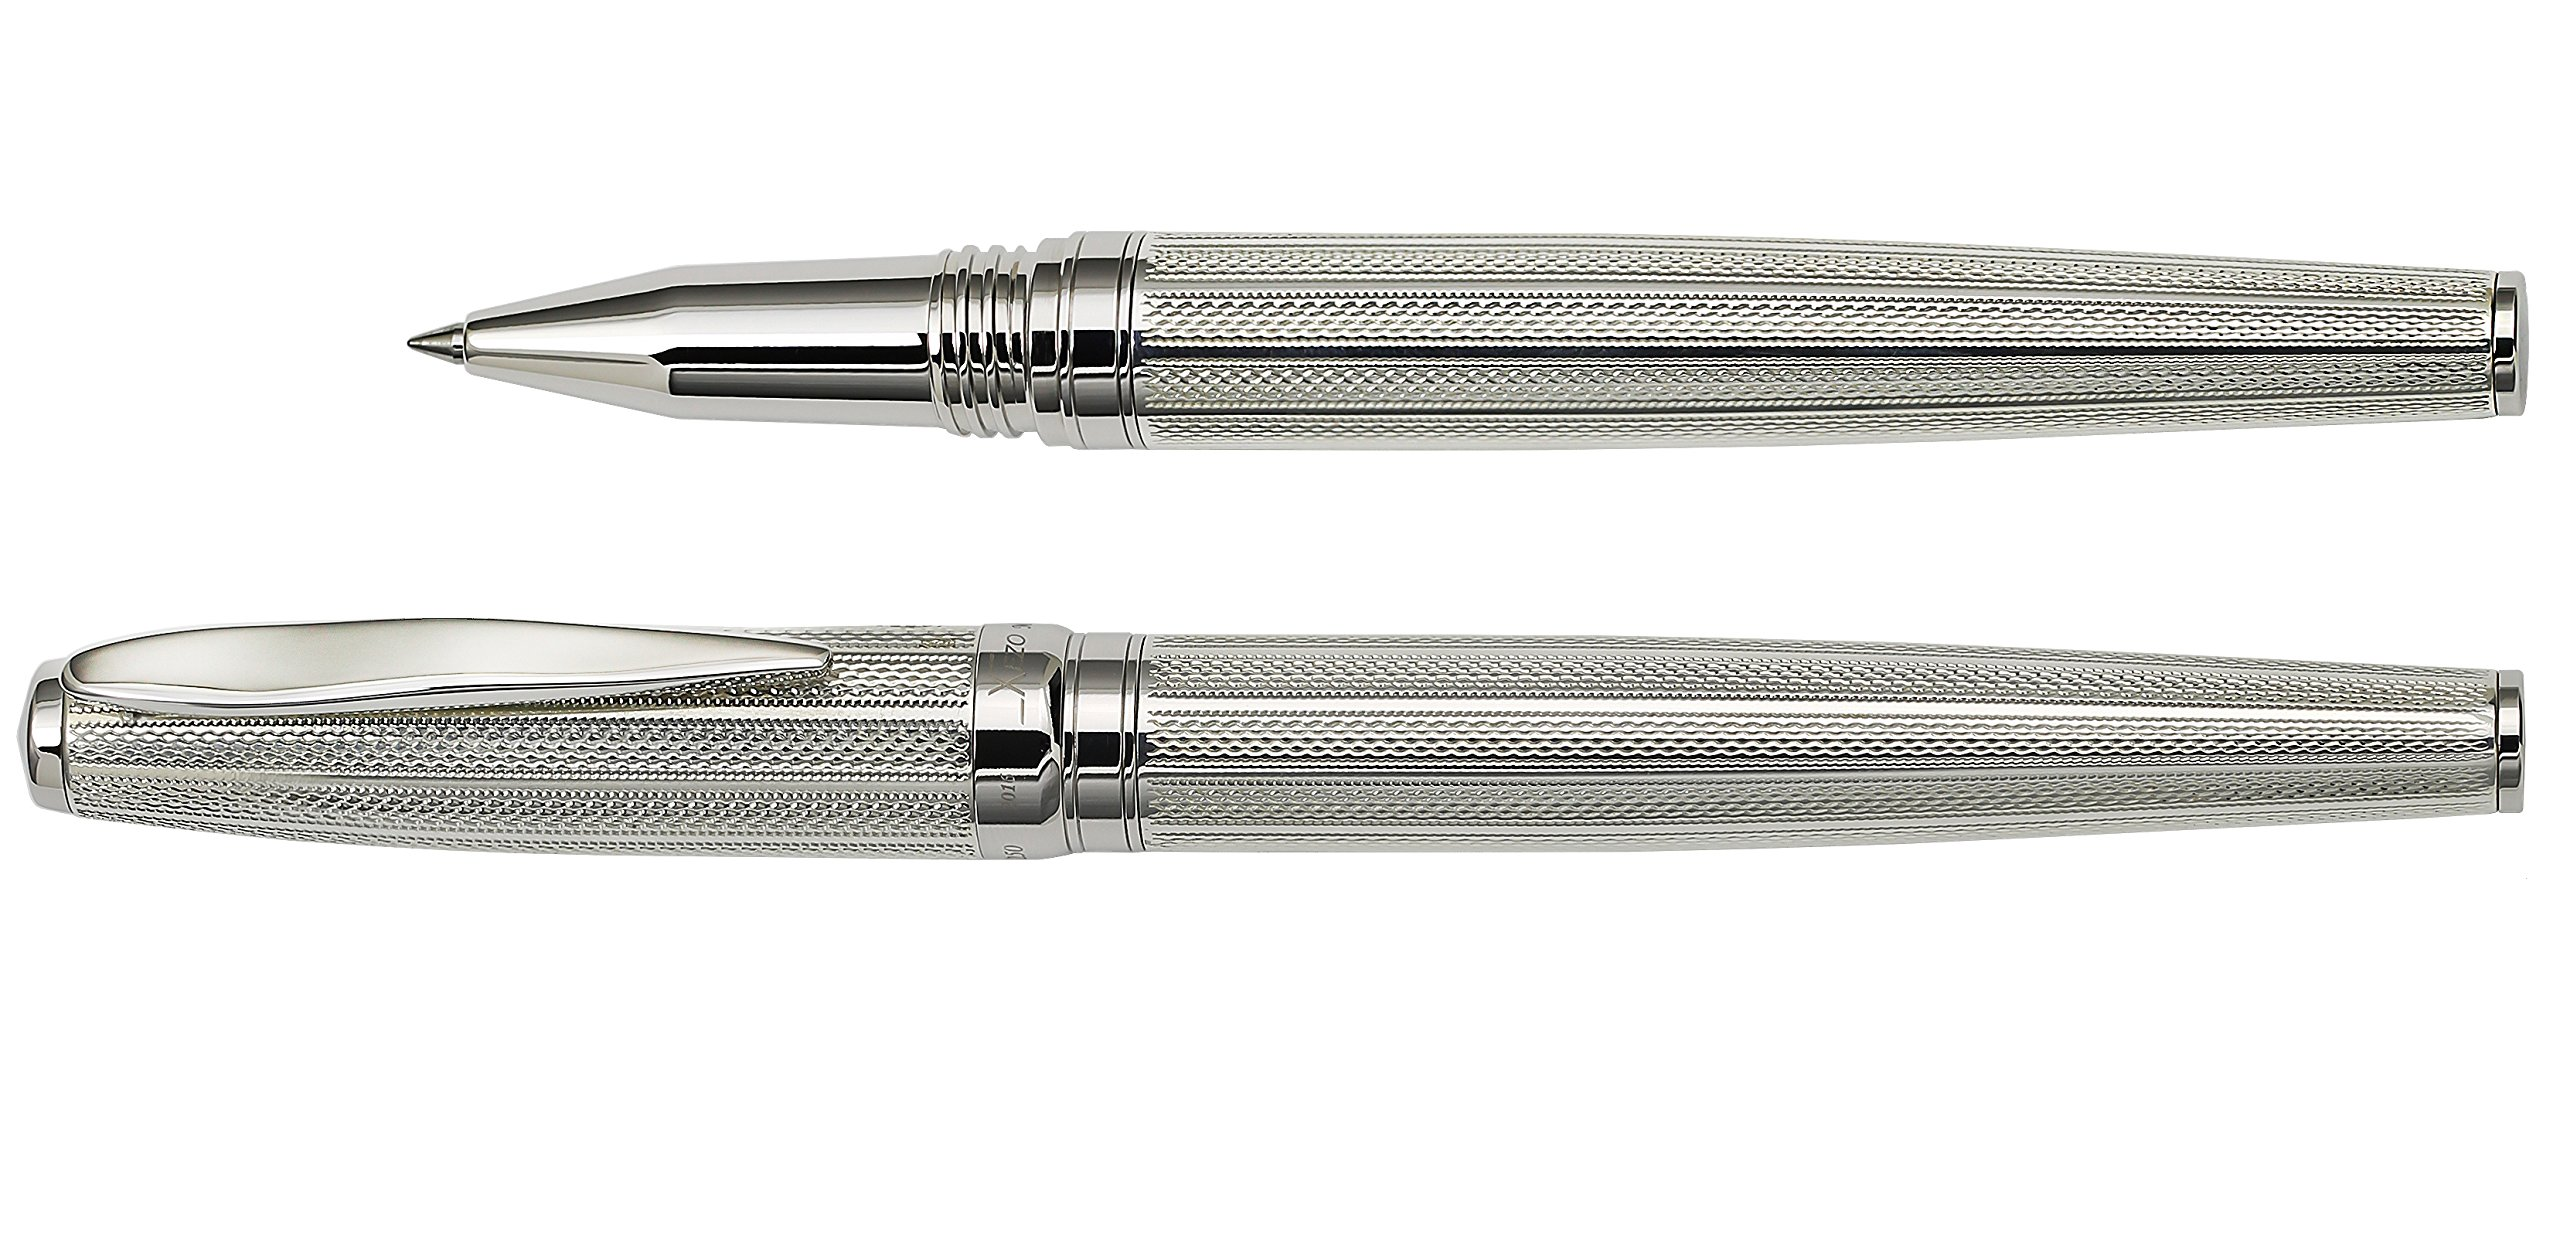 Xezo Solid 925 Sterling Silver Serialized Fine Rollerball Pen with Screw-On Cap (Maestro 925 Sterling Silver R-1) by Xezo (Image #6)